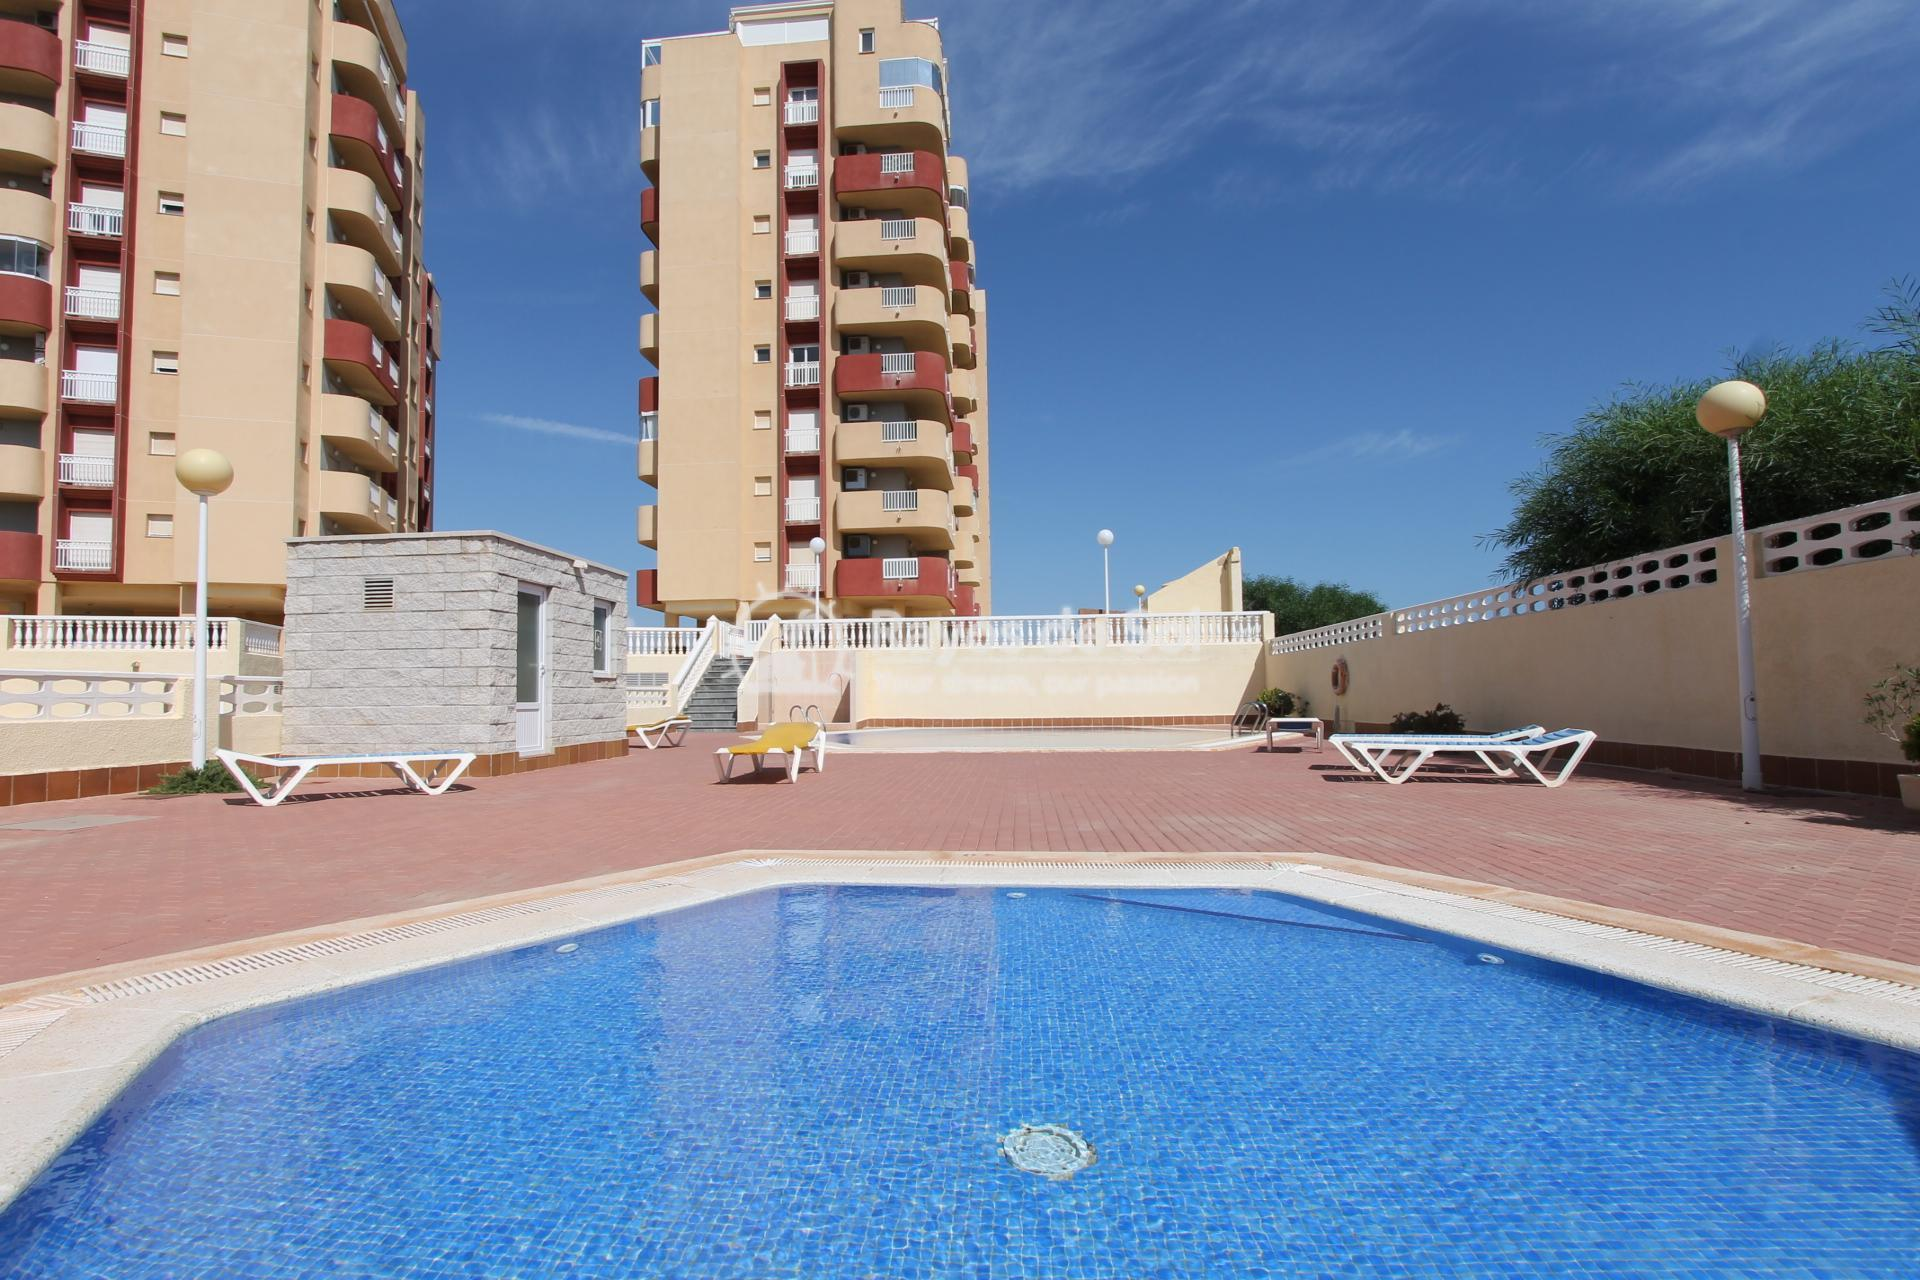 Apartment  in La Manga del Mar Menor, Costa Cálida (mp276) - 1